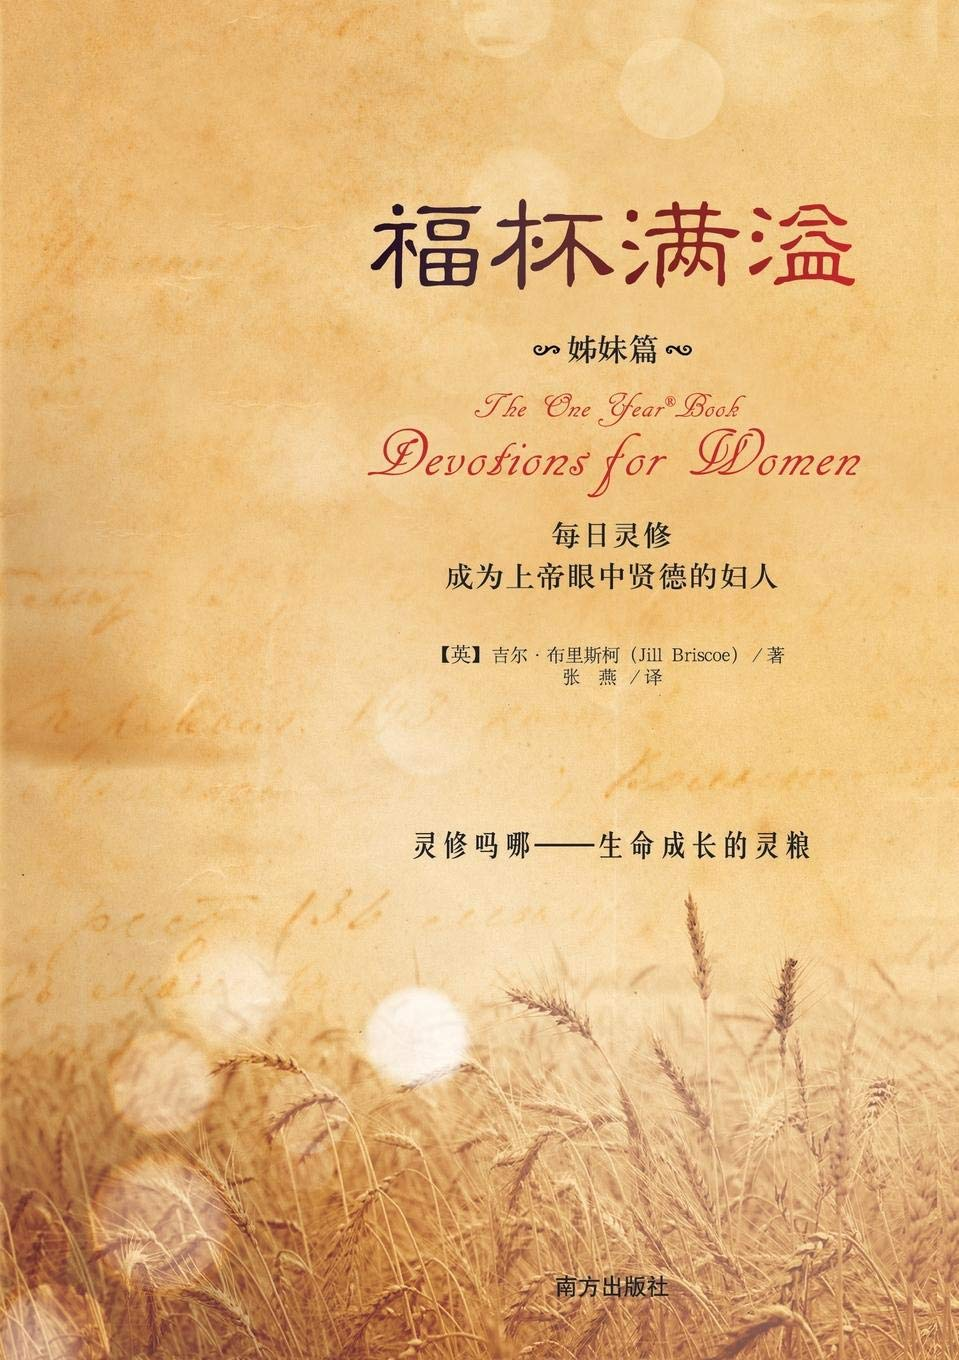 The One Year(r) Book Devotions For Women (Chinese Edition)